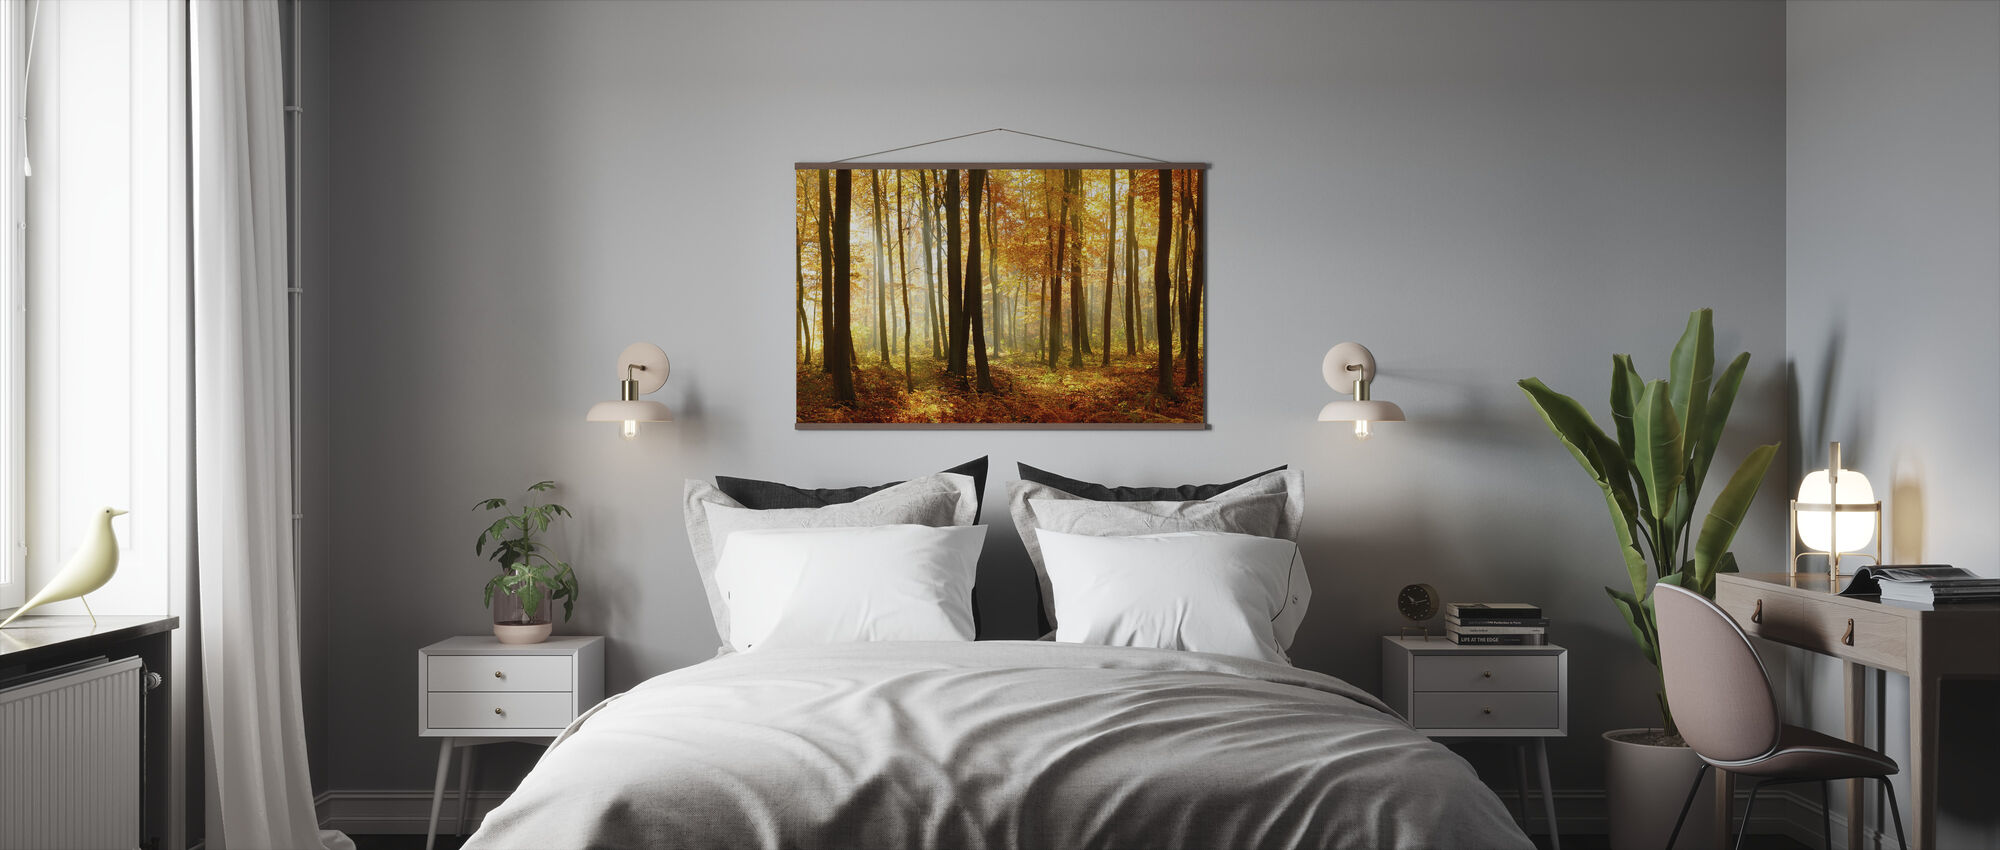 Japanese Forest - Poster - Bedroom